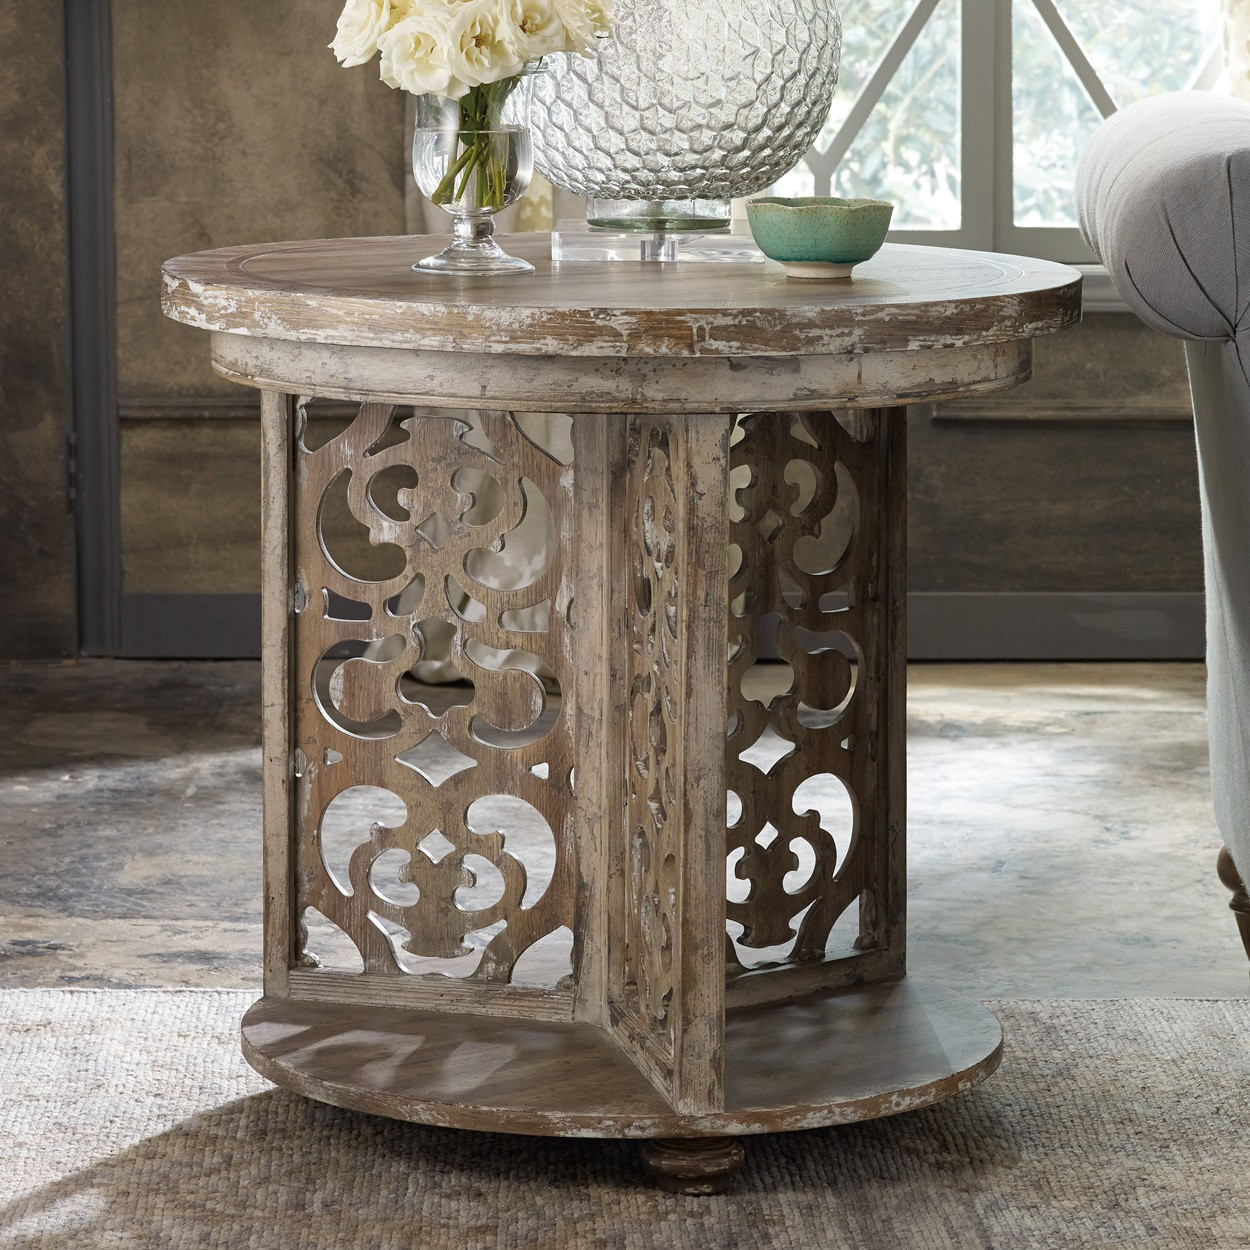 chatelet wood round accent table caramel froth humble abode roundaccenttable caramelfroth hookerfurniture small glass patio aluminum nesting tables console outdoor couch